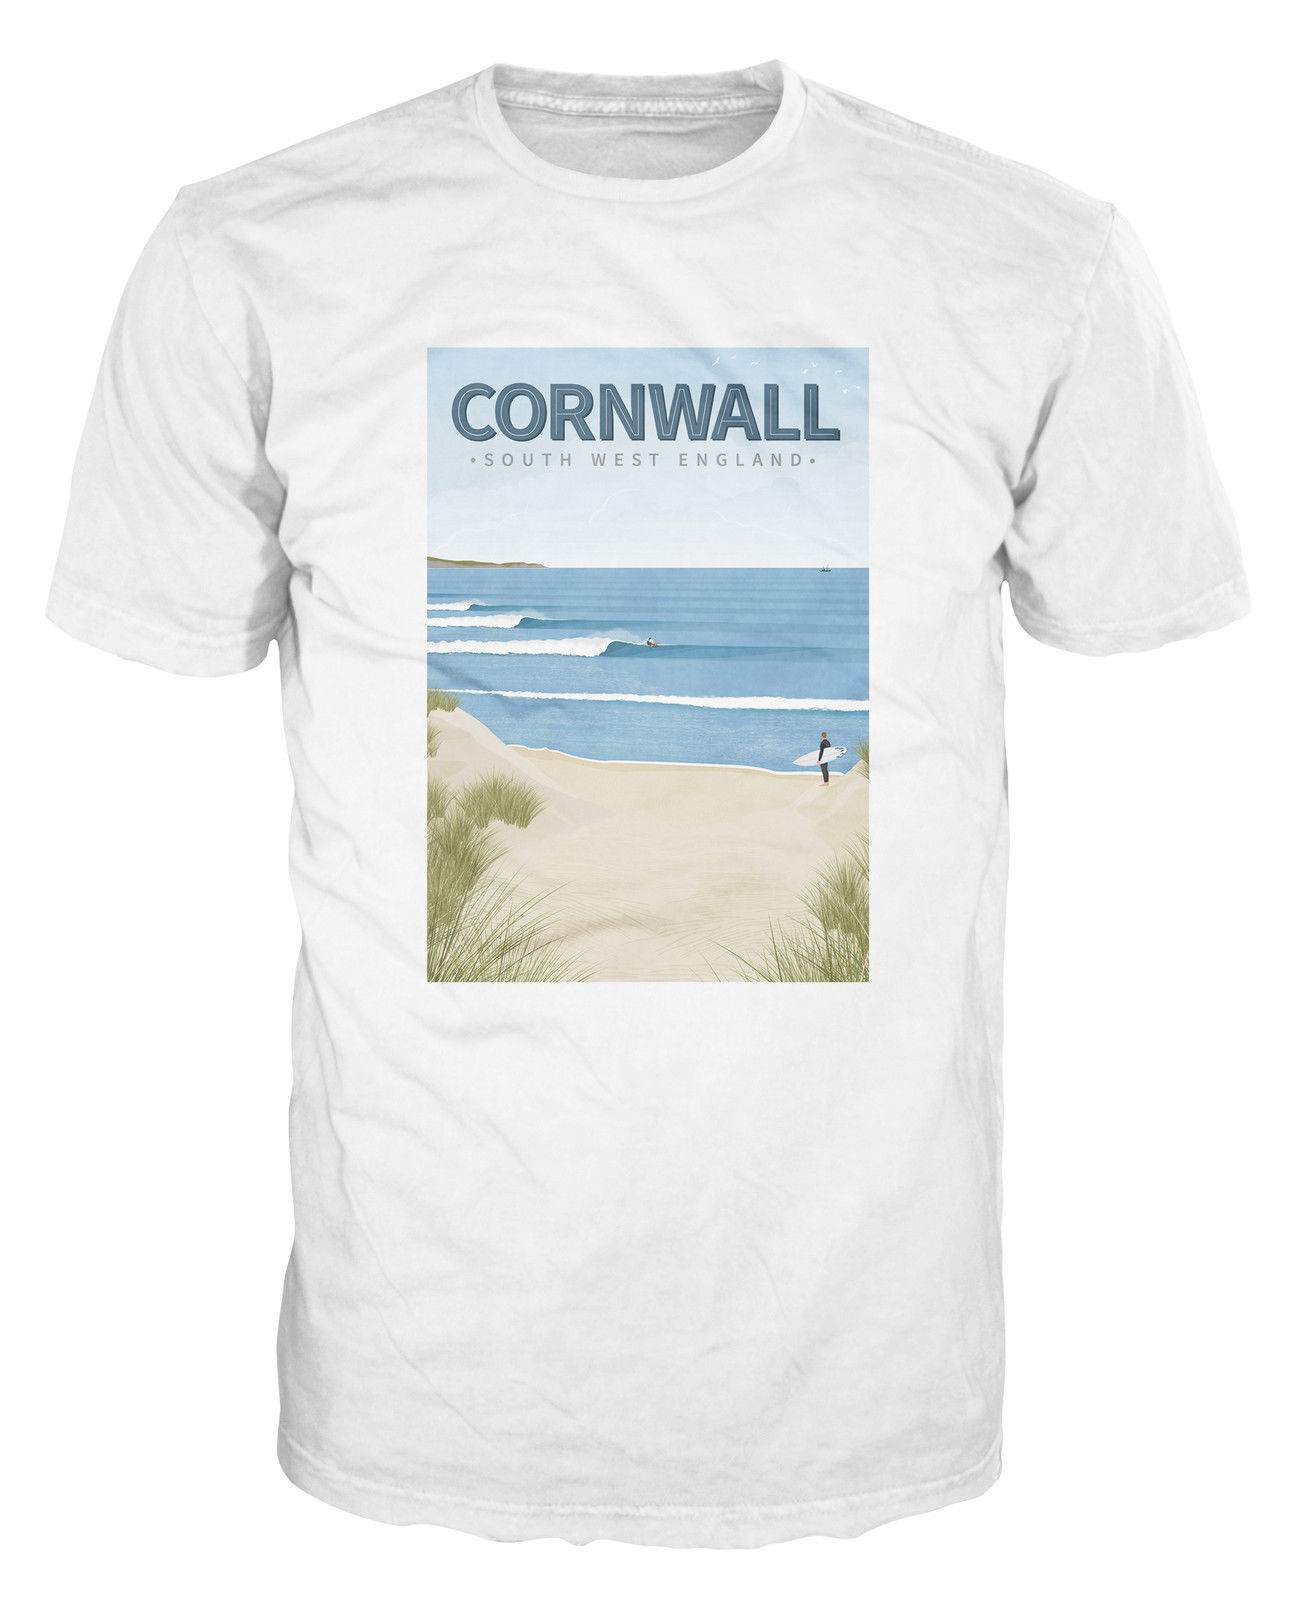 Cornwall Surfinged Southwest Beach Surfed UK England Short Sleeve Basic Tops top tee